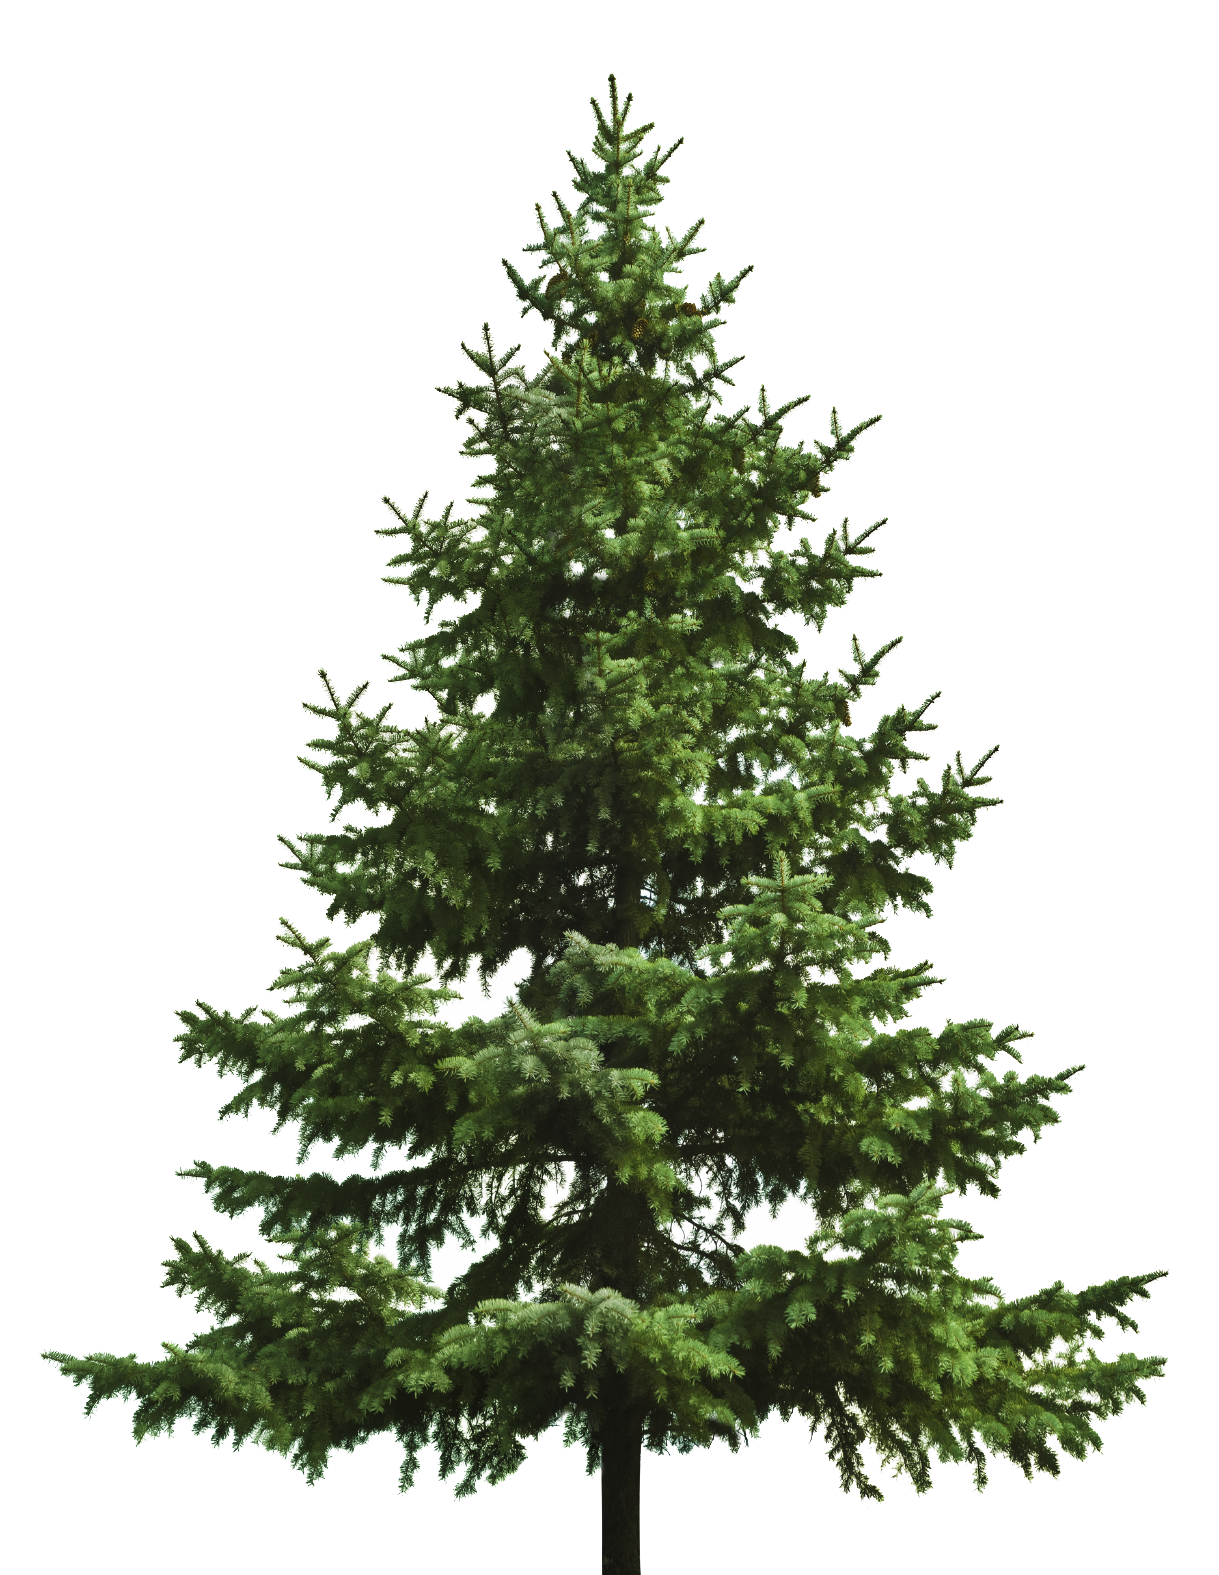 Christmas pine tree png. Free download of icon